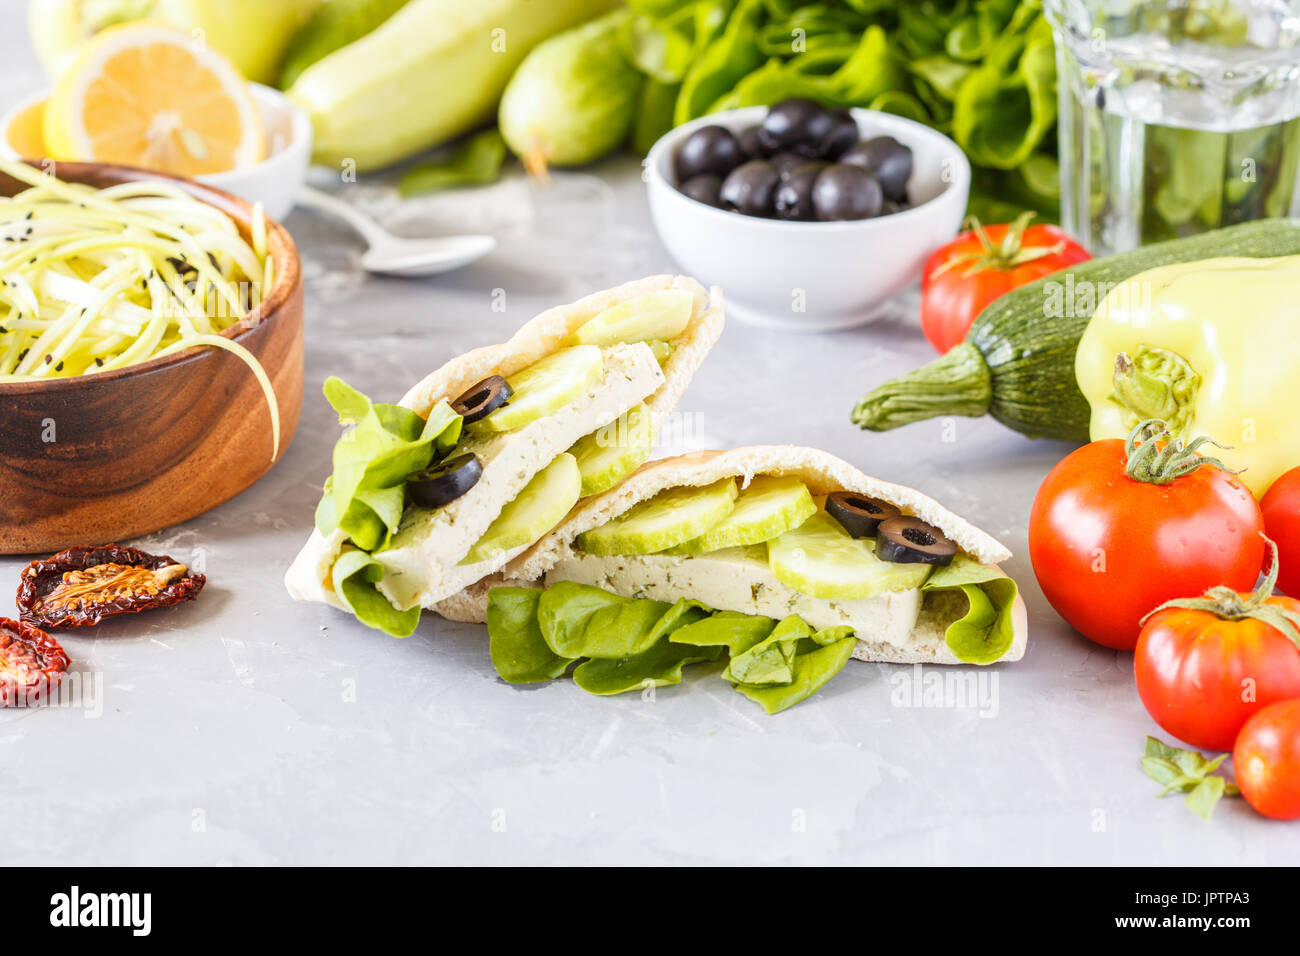 Healthy sandwiches with vegetables and tofu in pita. Love for a healthy vegan food concept. - Stock Image